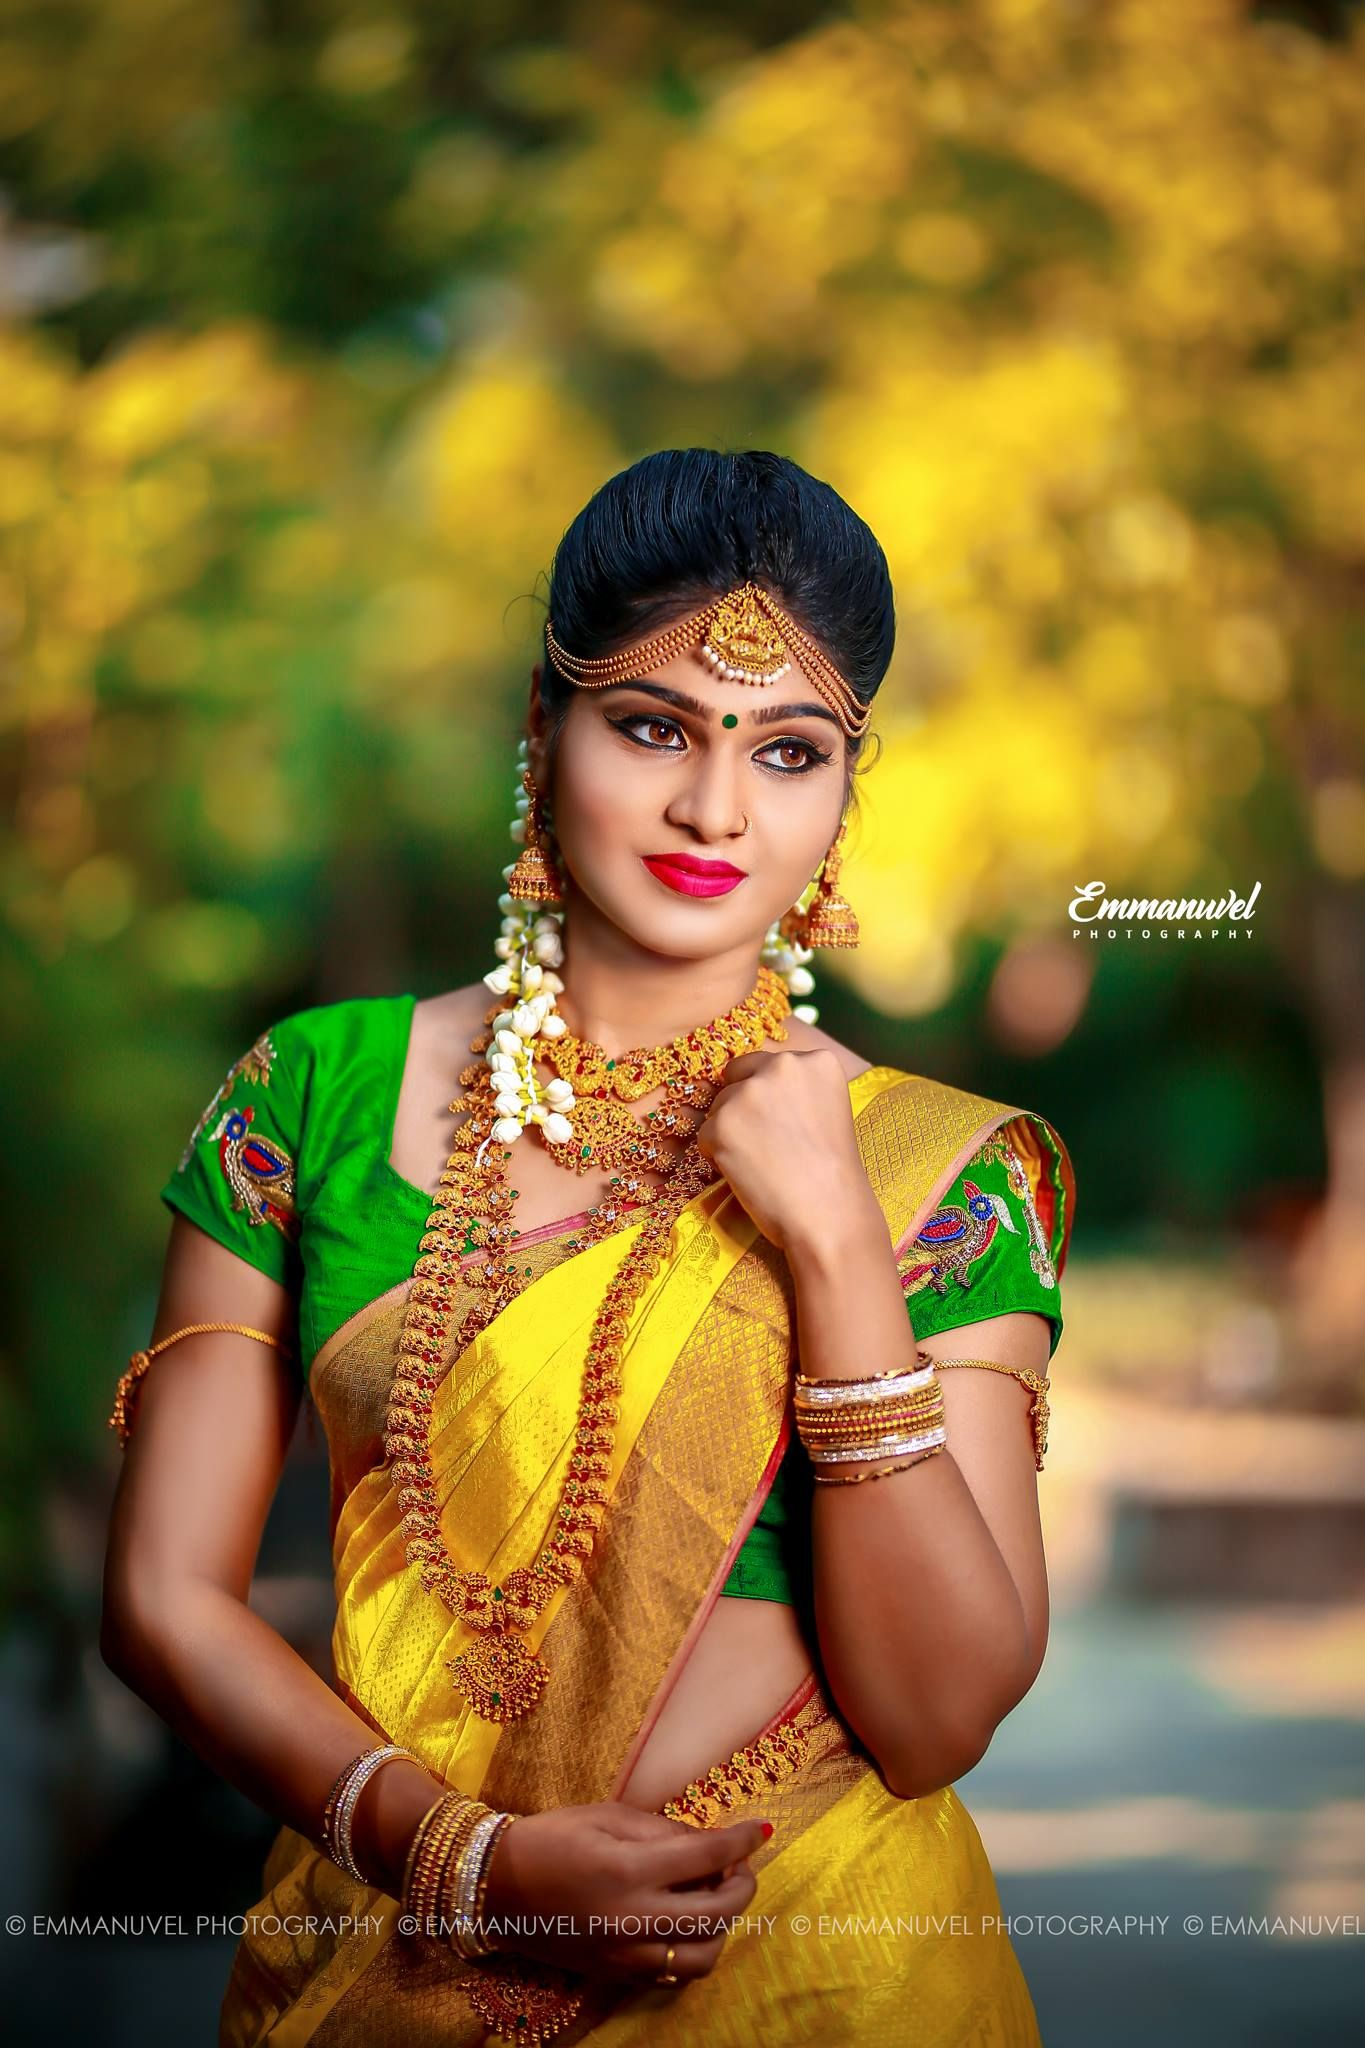 Bridal Jewelry South Indian Wedding Collections Indian Bride Poses Bride Poses Indian Wedding Bride